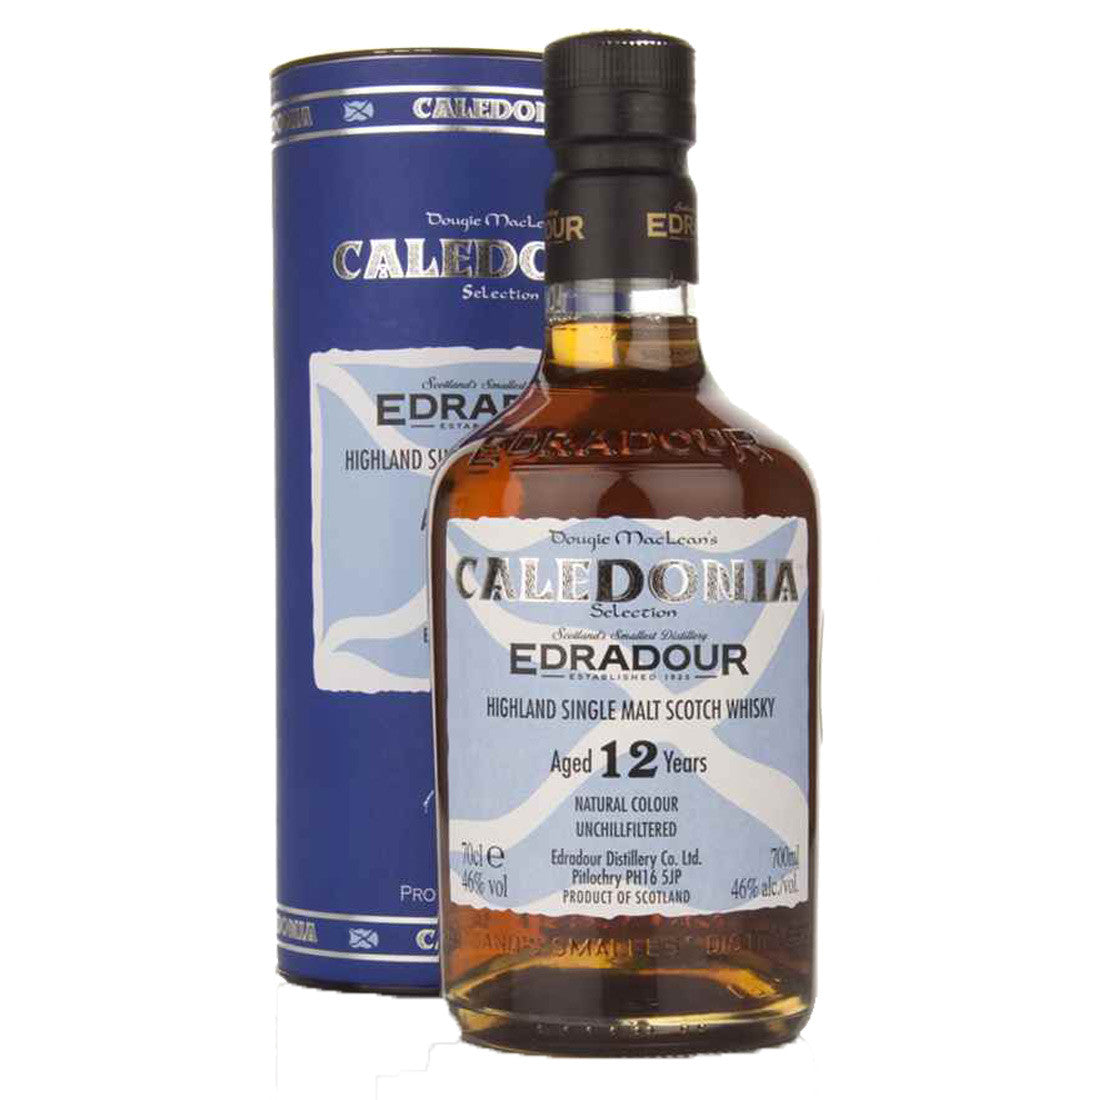 Edradour 12 Years Caledonia Highland Single Malt Scotch Whisky - 700ml Whiskey - Drinkka Alcohol Delivery Best Whiskey Gin Beer Vodkas and more in Makati and Manila | Bevtools Bar and Beverage Tools